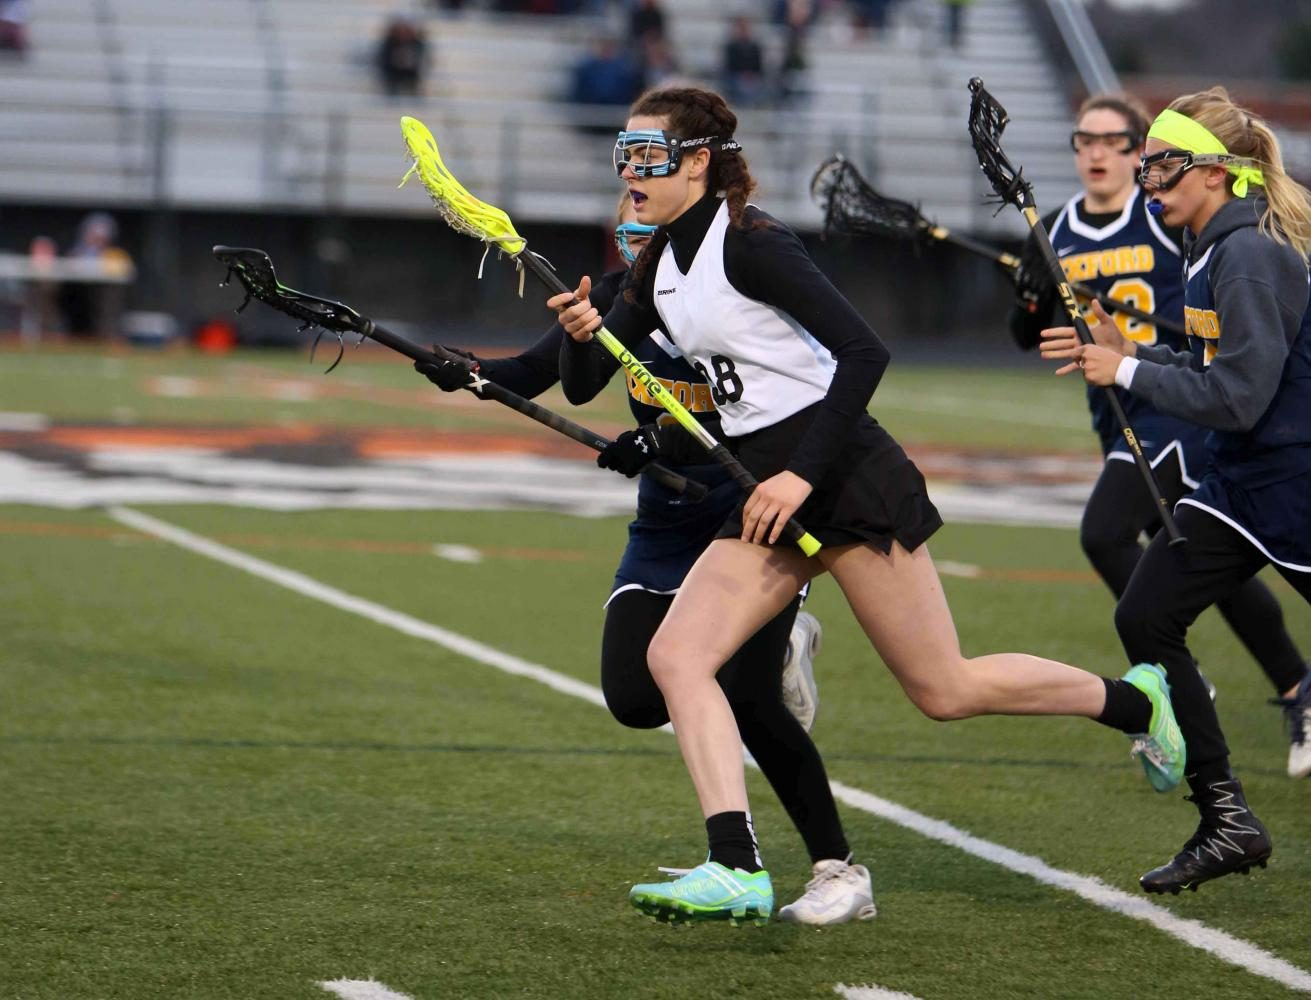 With her eyes on the net, junior Jessica Lynch sprints down the field ready to score during the varsity Lacrosse game against Oxford High School.